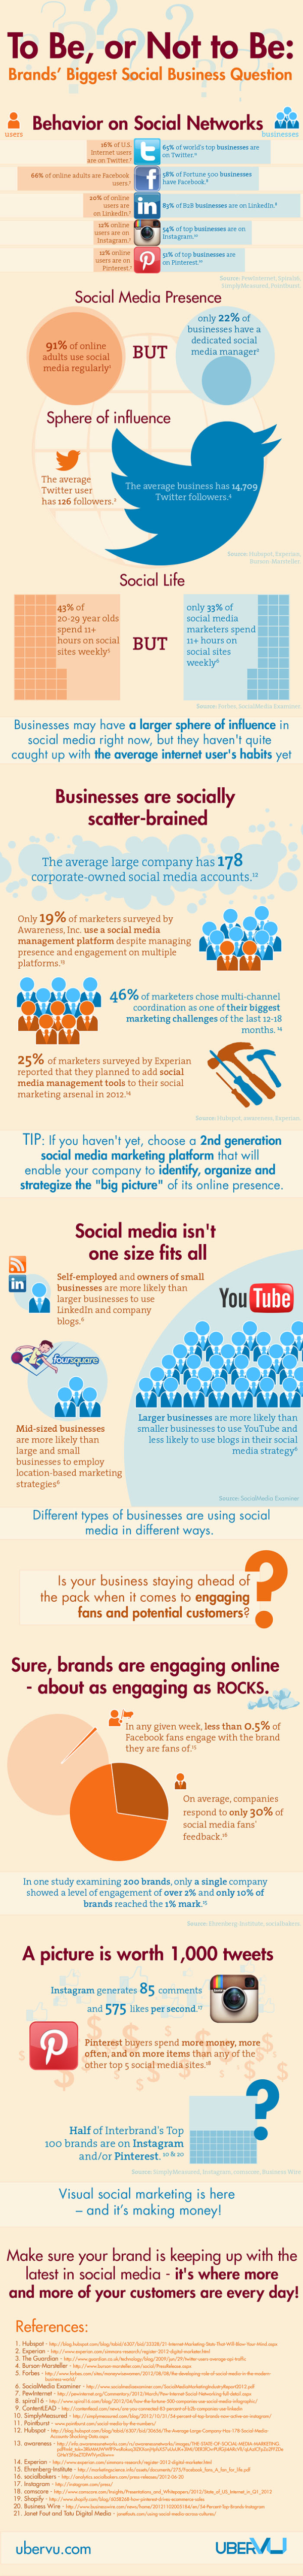 SocialBusinessInfographic FINAL resized 600